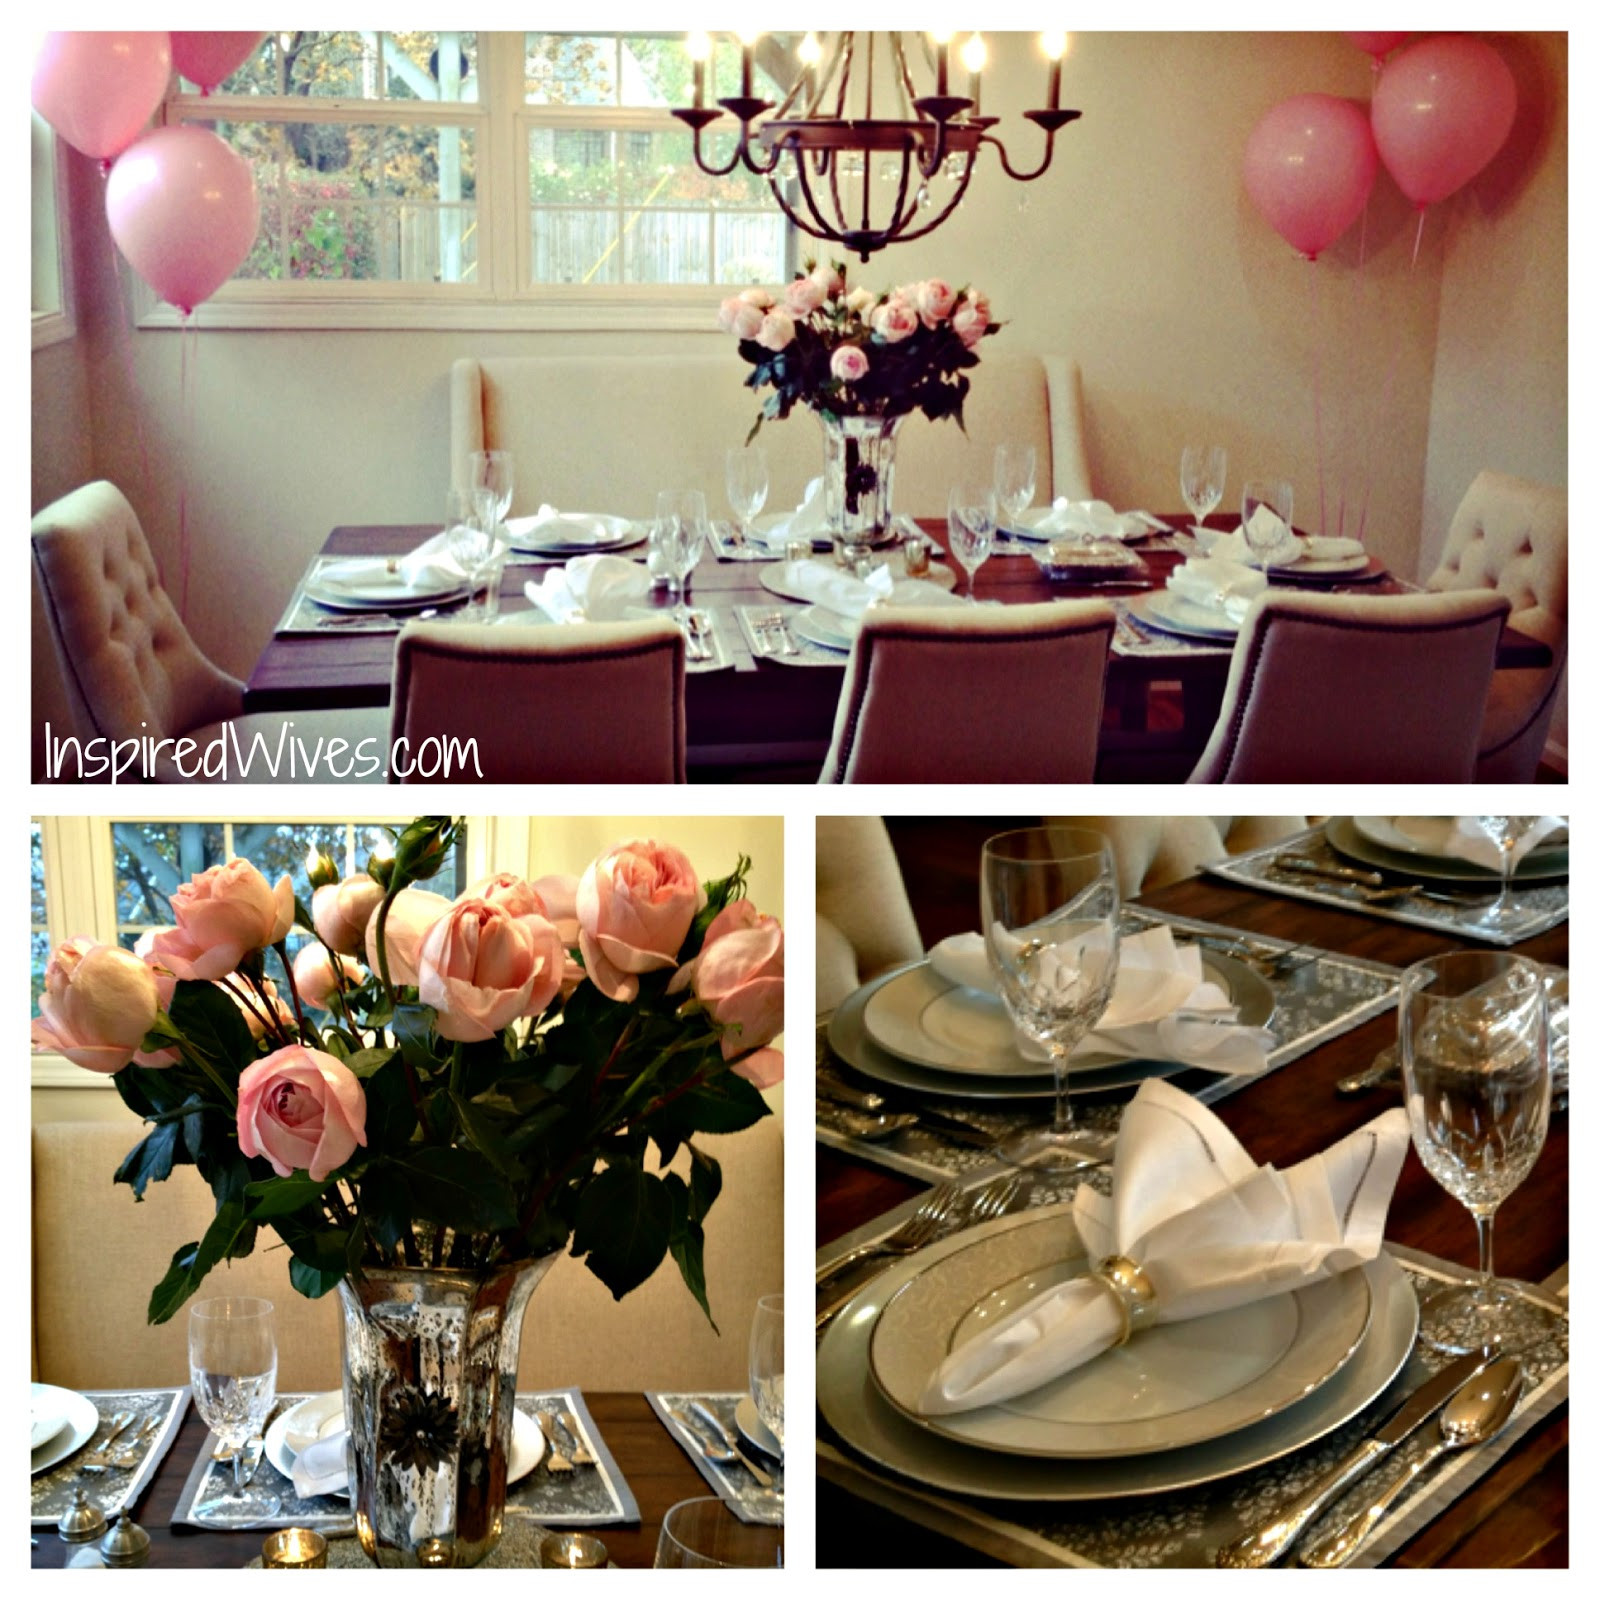 Best ideas about Birthday Dinner Ideas For Adults . Save or Pin Inspired I Dos Elegant Dinner Party Think Pink Now.